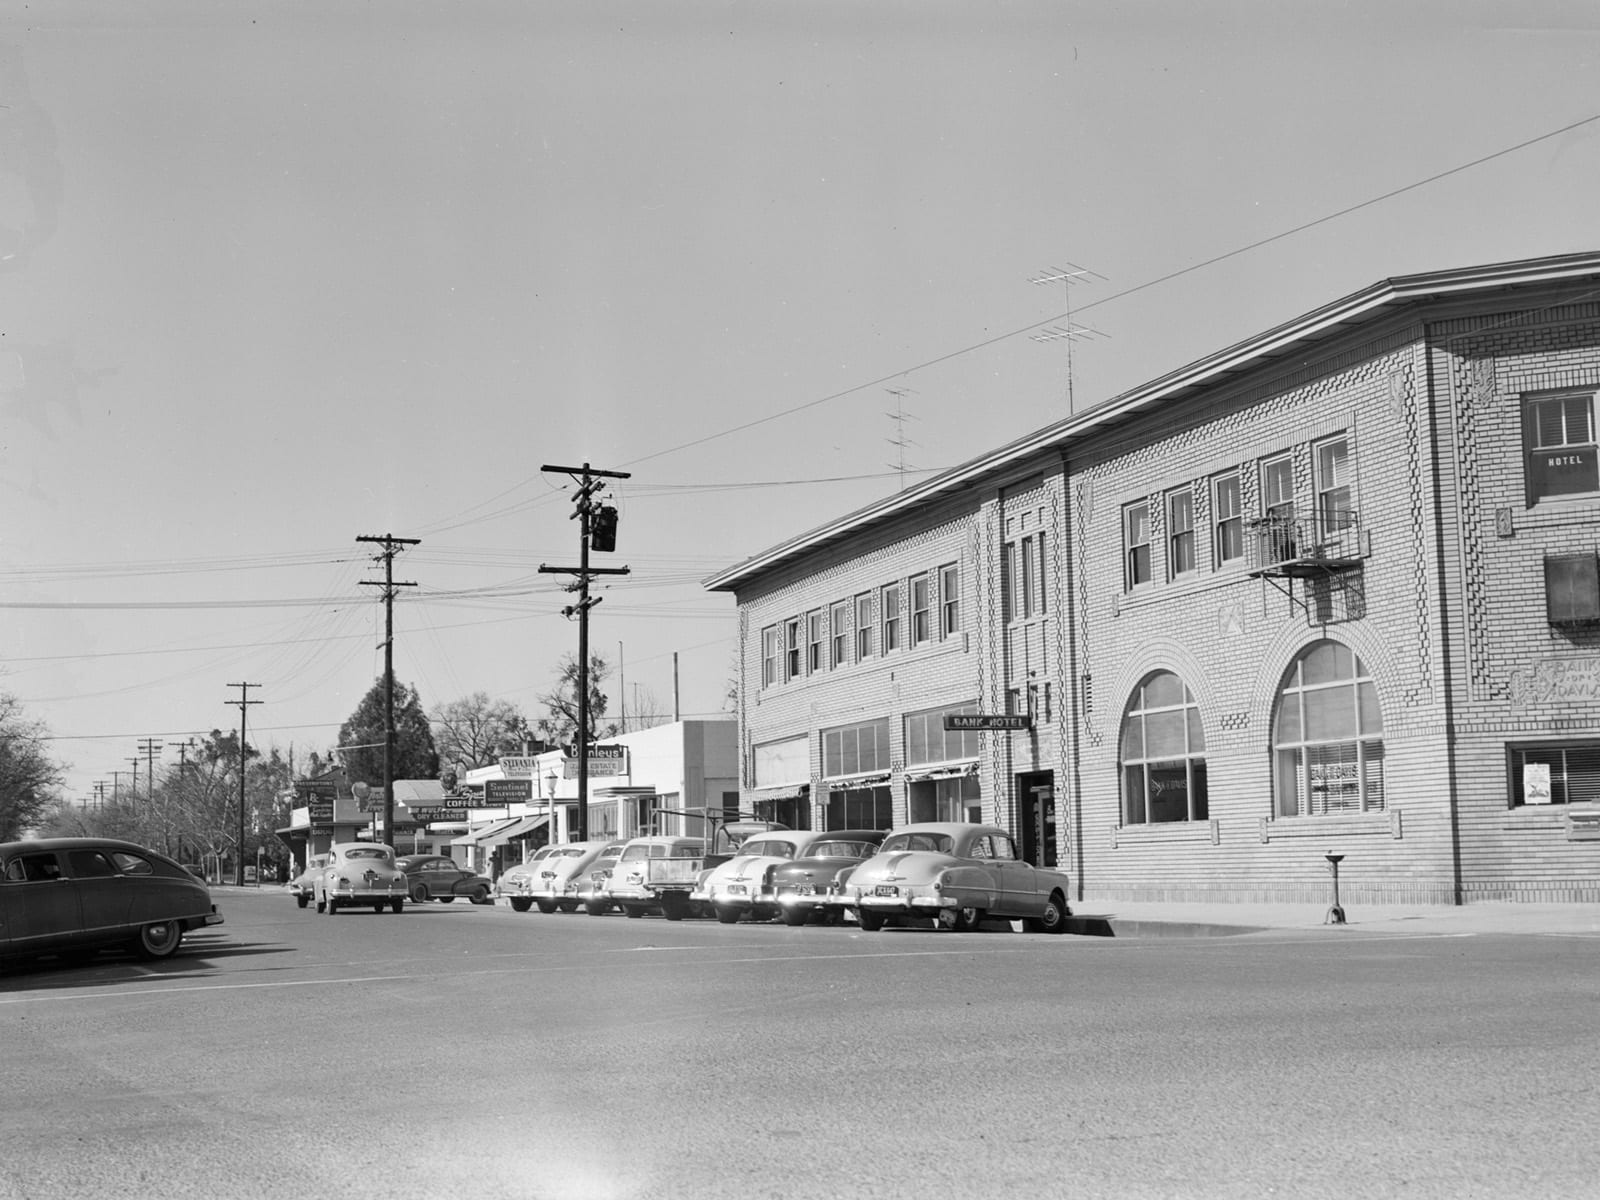 Second Street at G Street, looking west, 1953